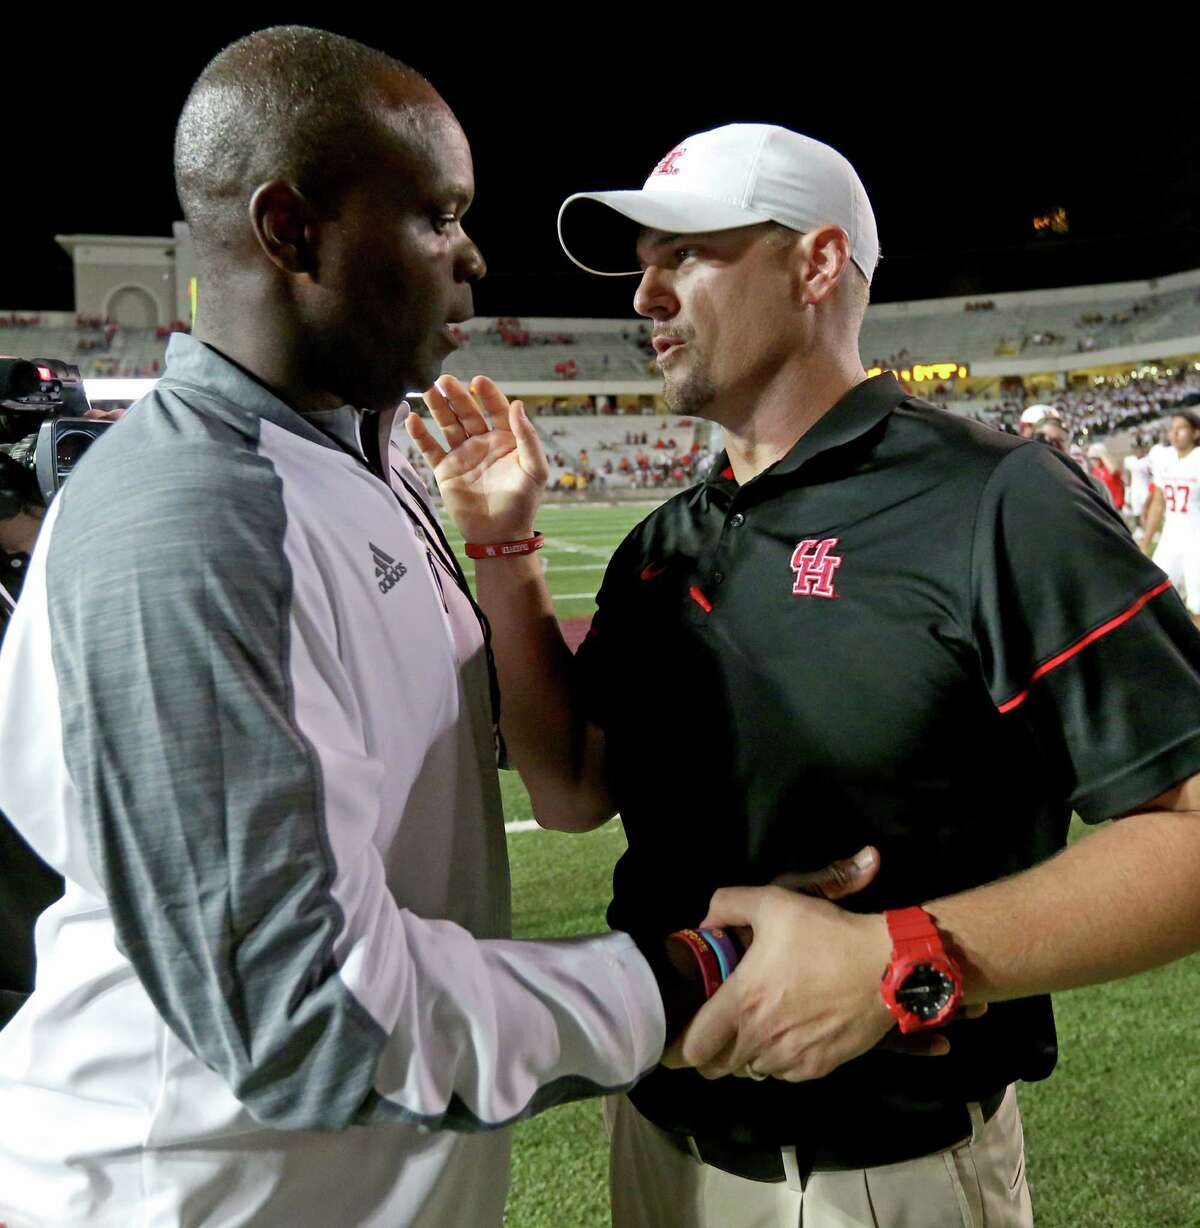 Texas State Bobcats head coach Everett Withers (left) and Houston Cougars head coach Tom Herman talk after the game Saturday Sept. 24, 2016 at Bobcat Stadium in San Marcos, Tx. The Houston Cougars won 64-3.